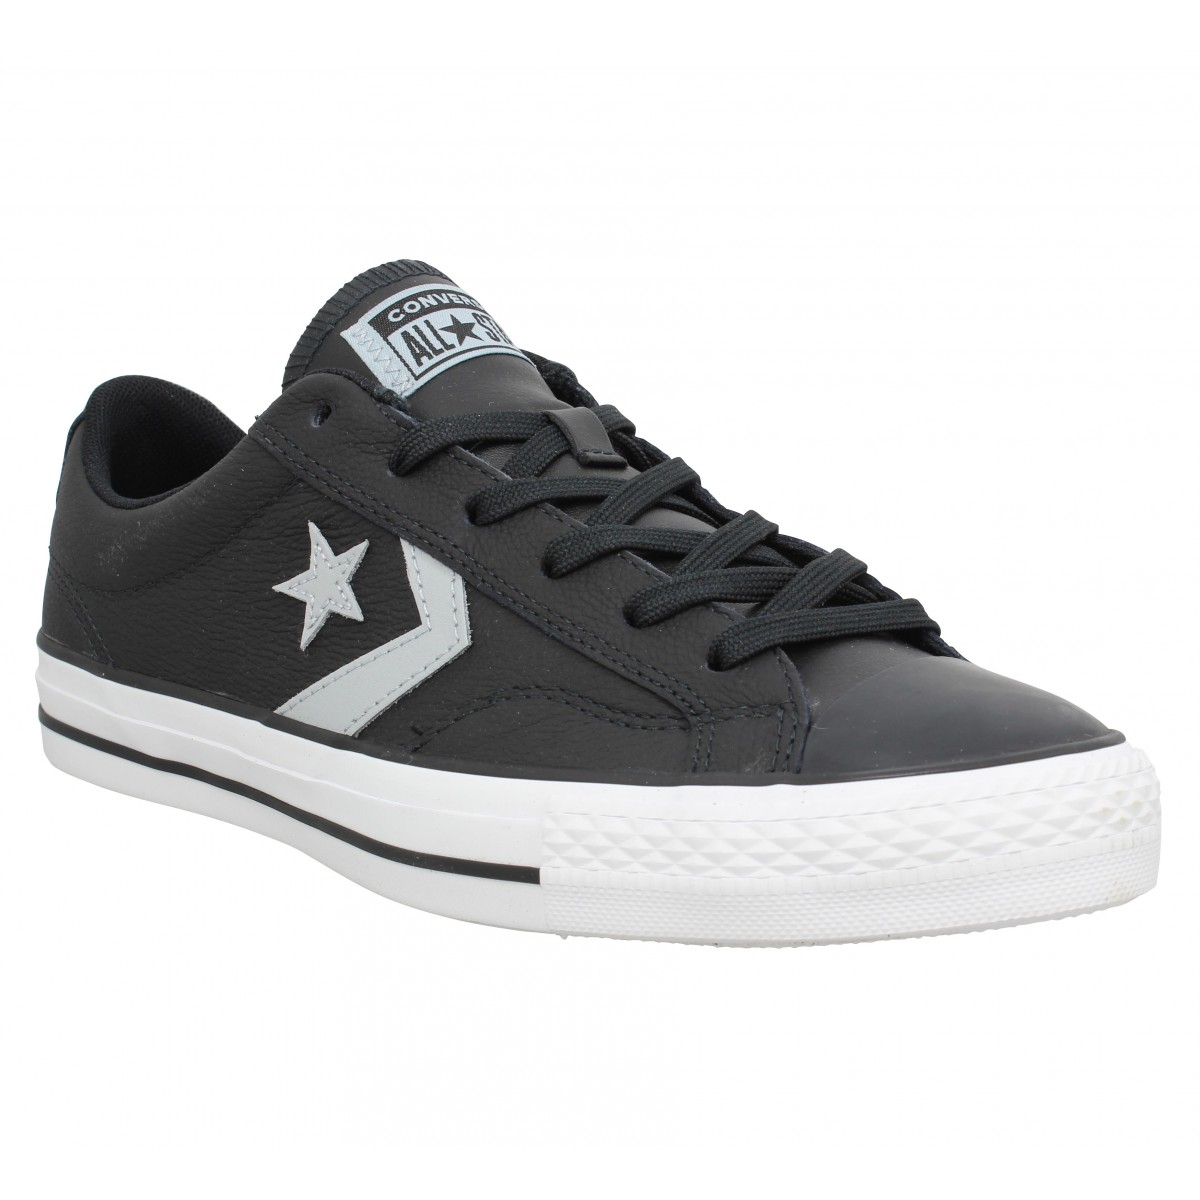 CONVERSE Star Player cuir Homme Noir